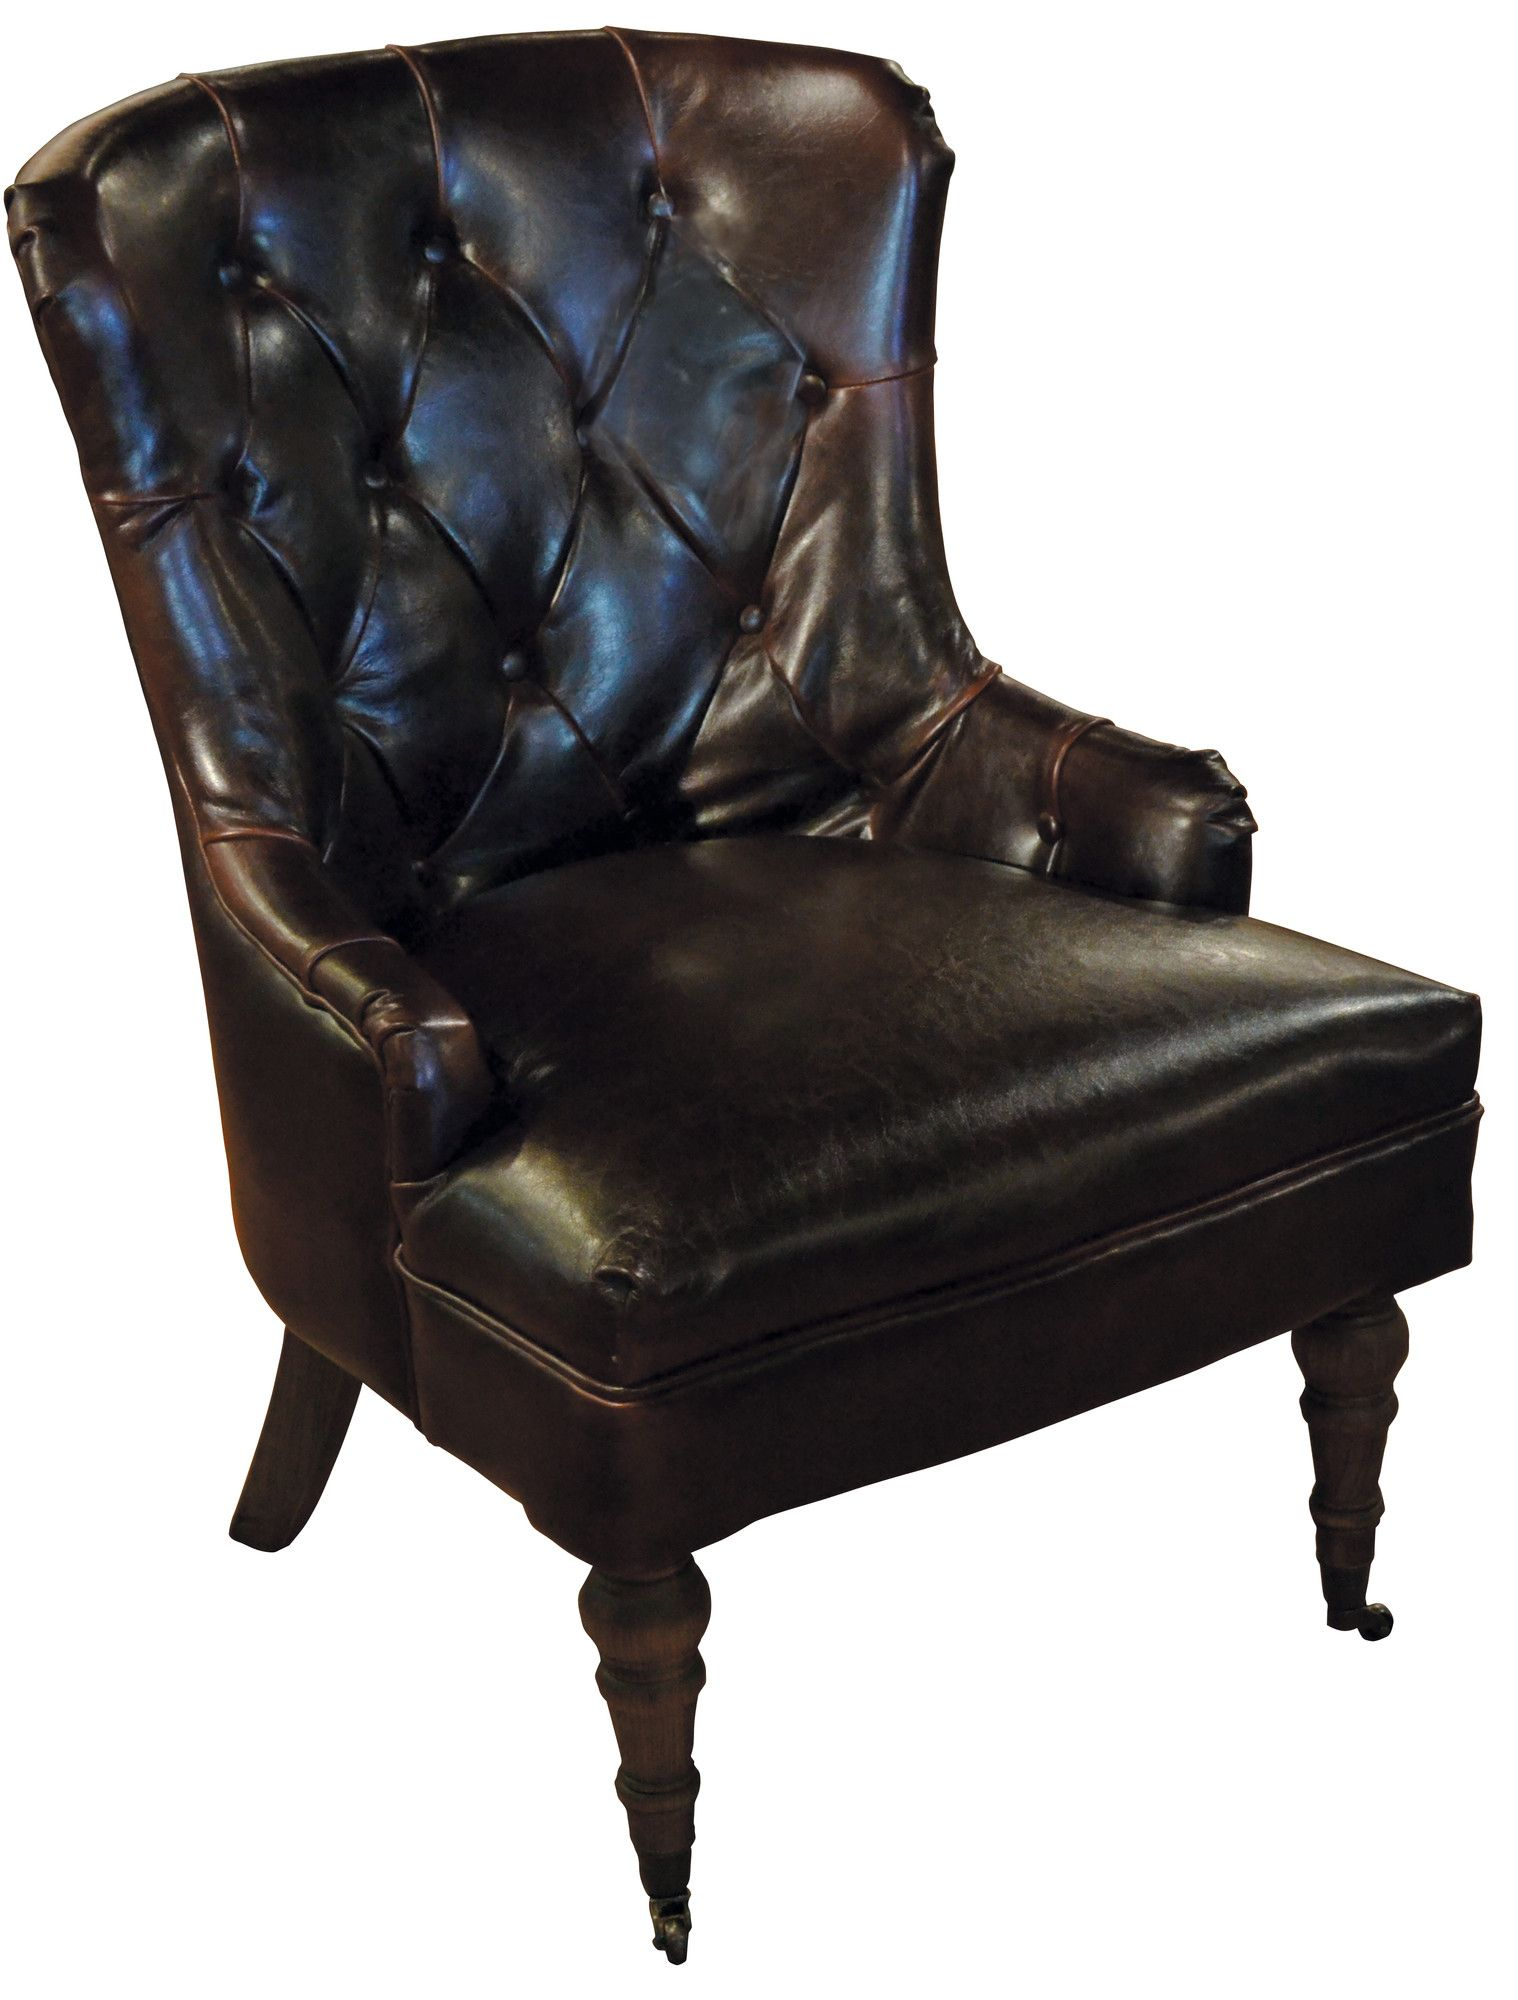 Tufted Leather Chair Wayfair Furniture